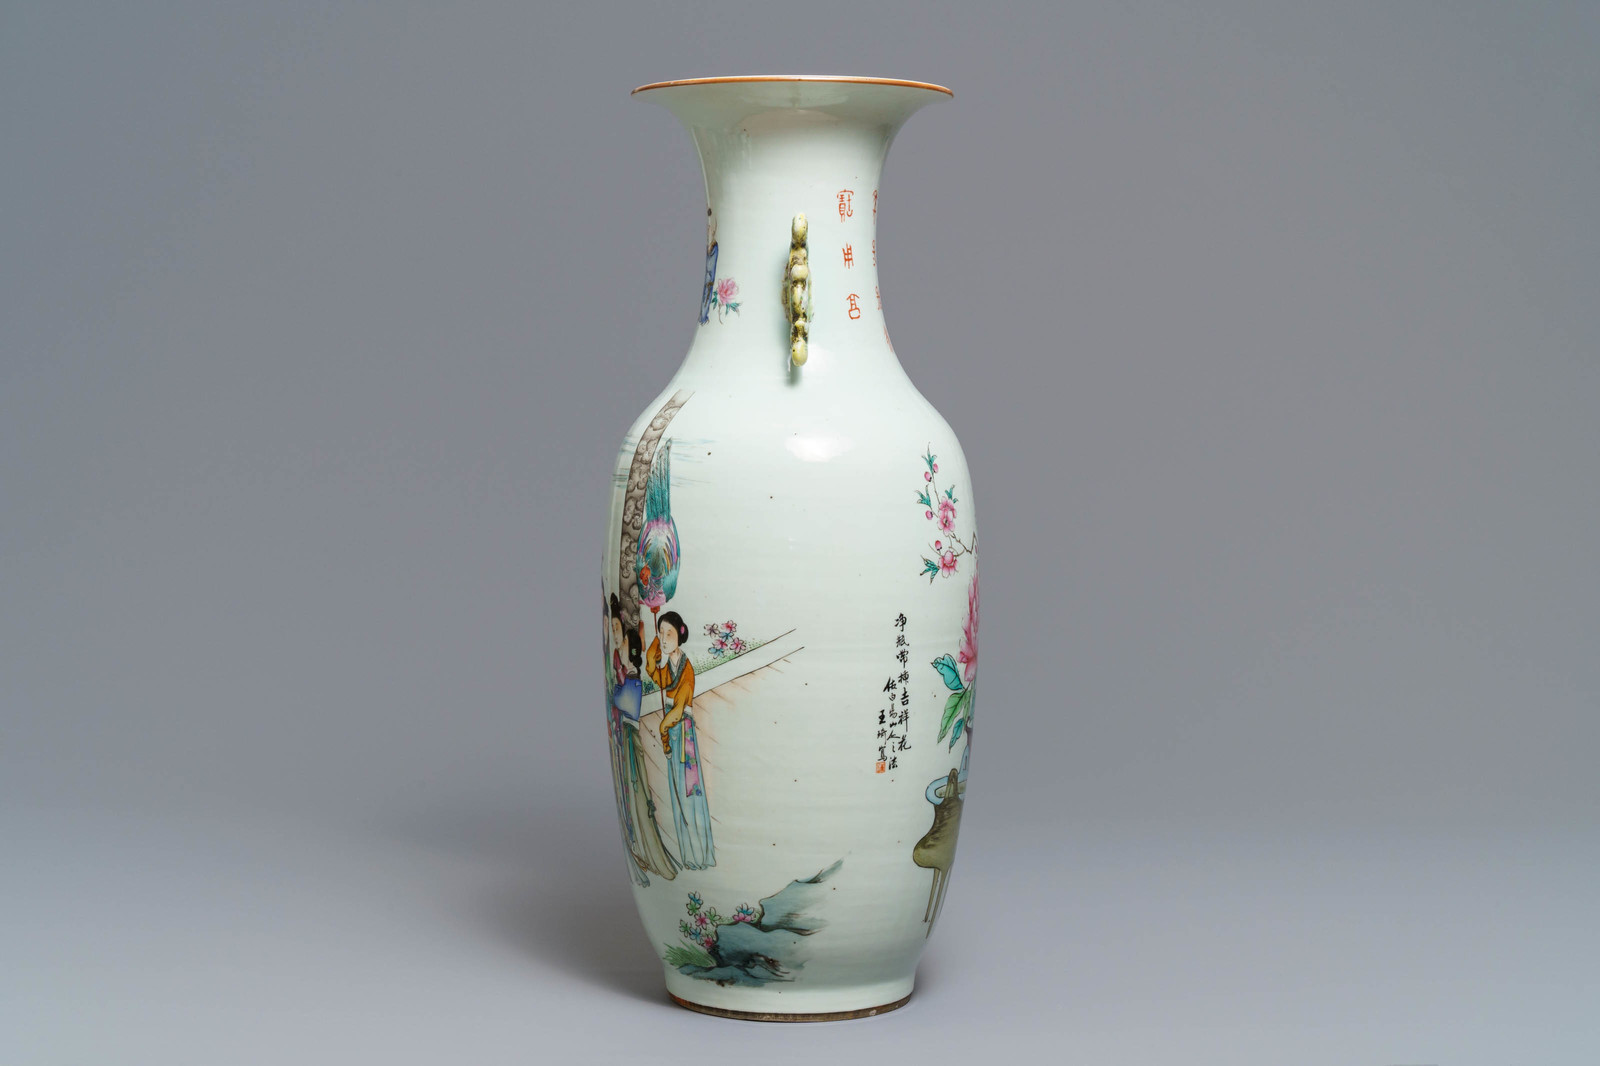 Lot 24 - A Chinese famille rose two-sided design vase, 19/20th C.